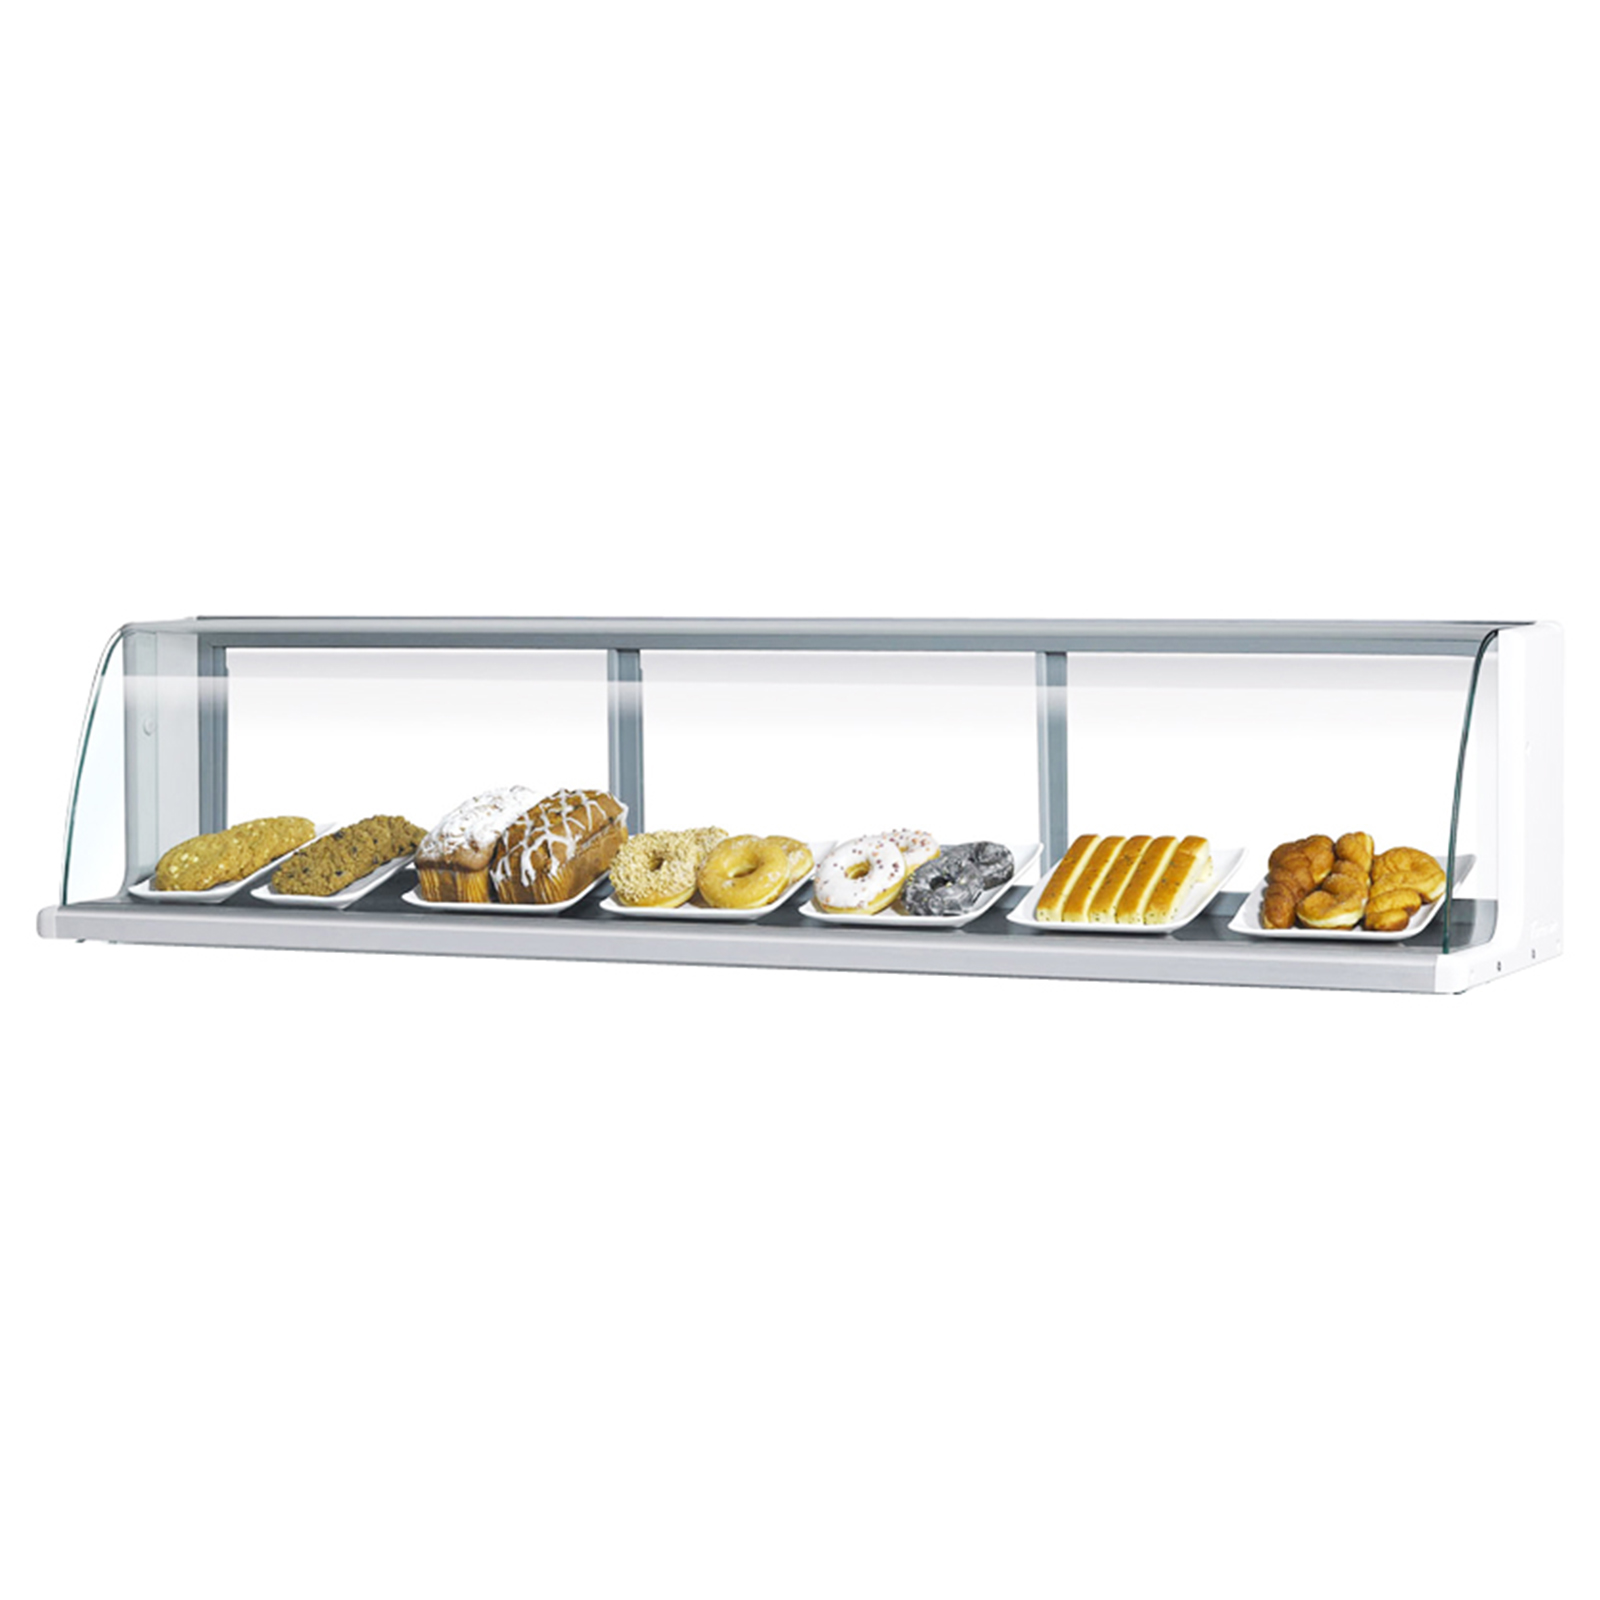 Turbo Air TOMD-60LW display case, non-refrigerated countertop